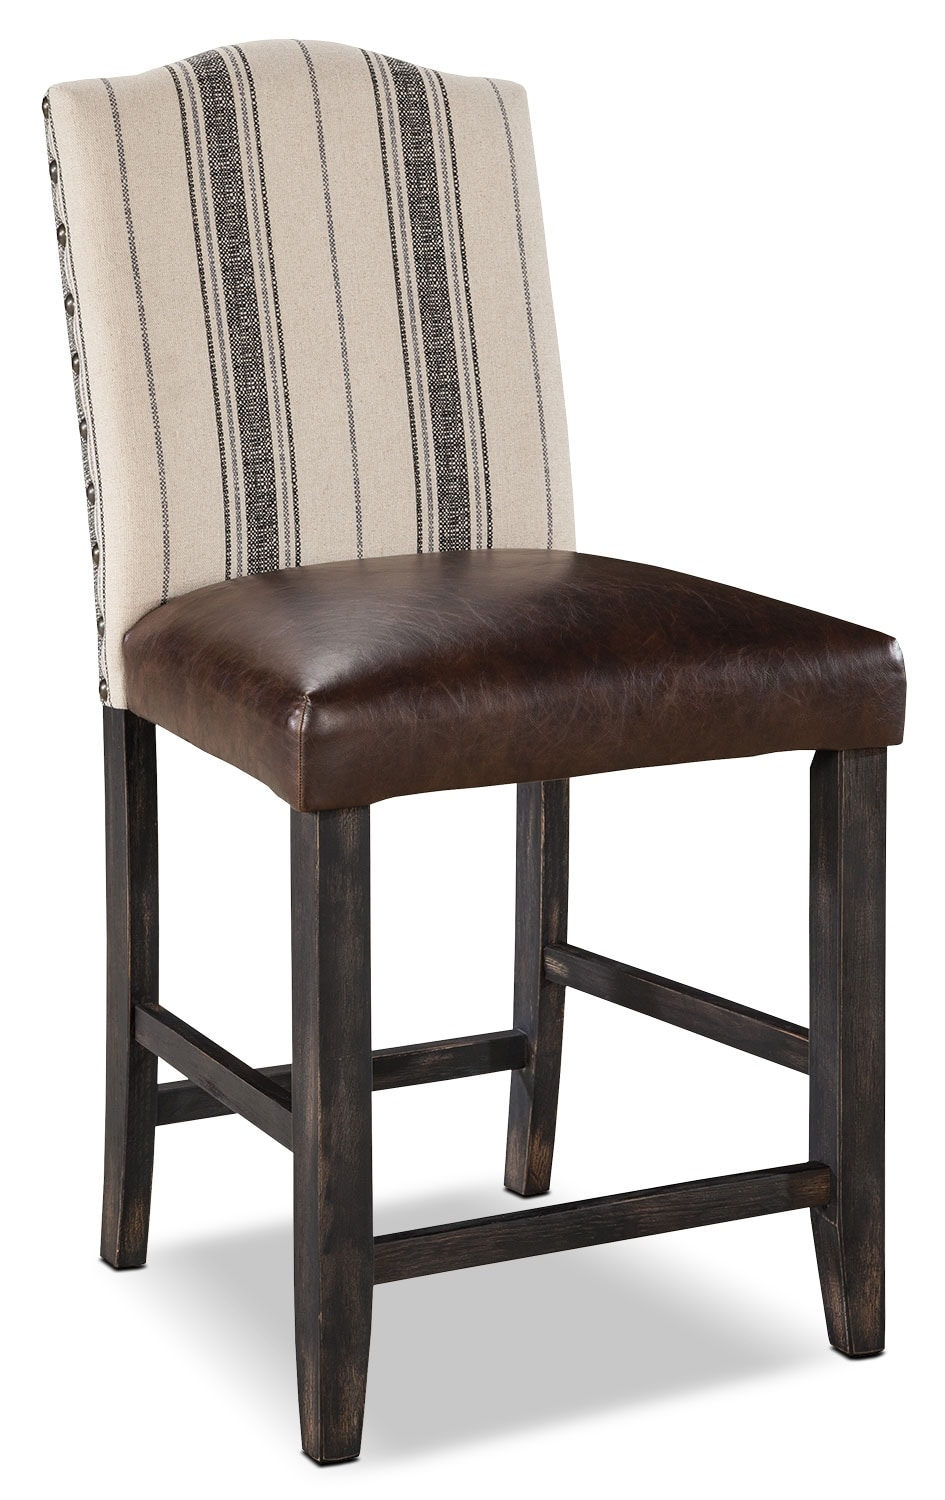 Dining Room Furniture - Moriann Linen and Faux Leather Counter-Height Stool - Dark Brown